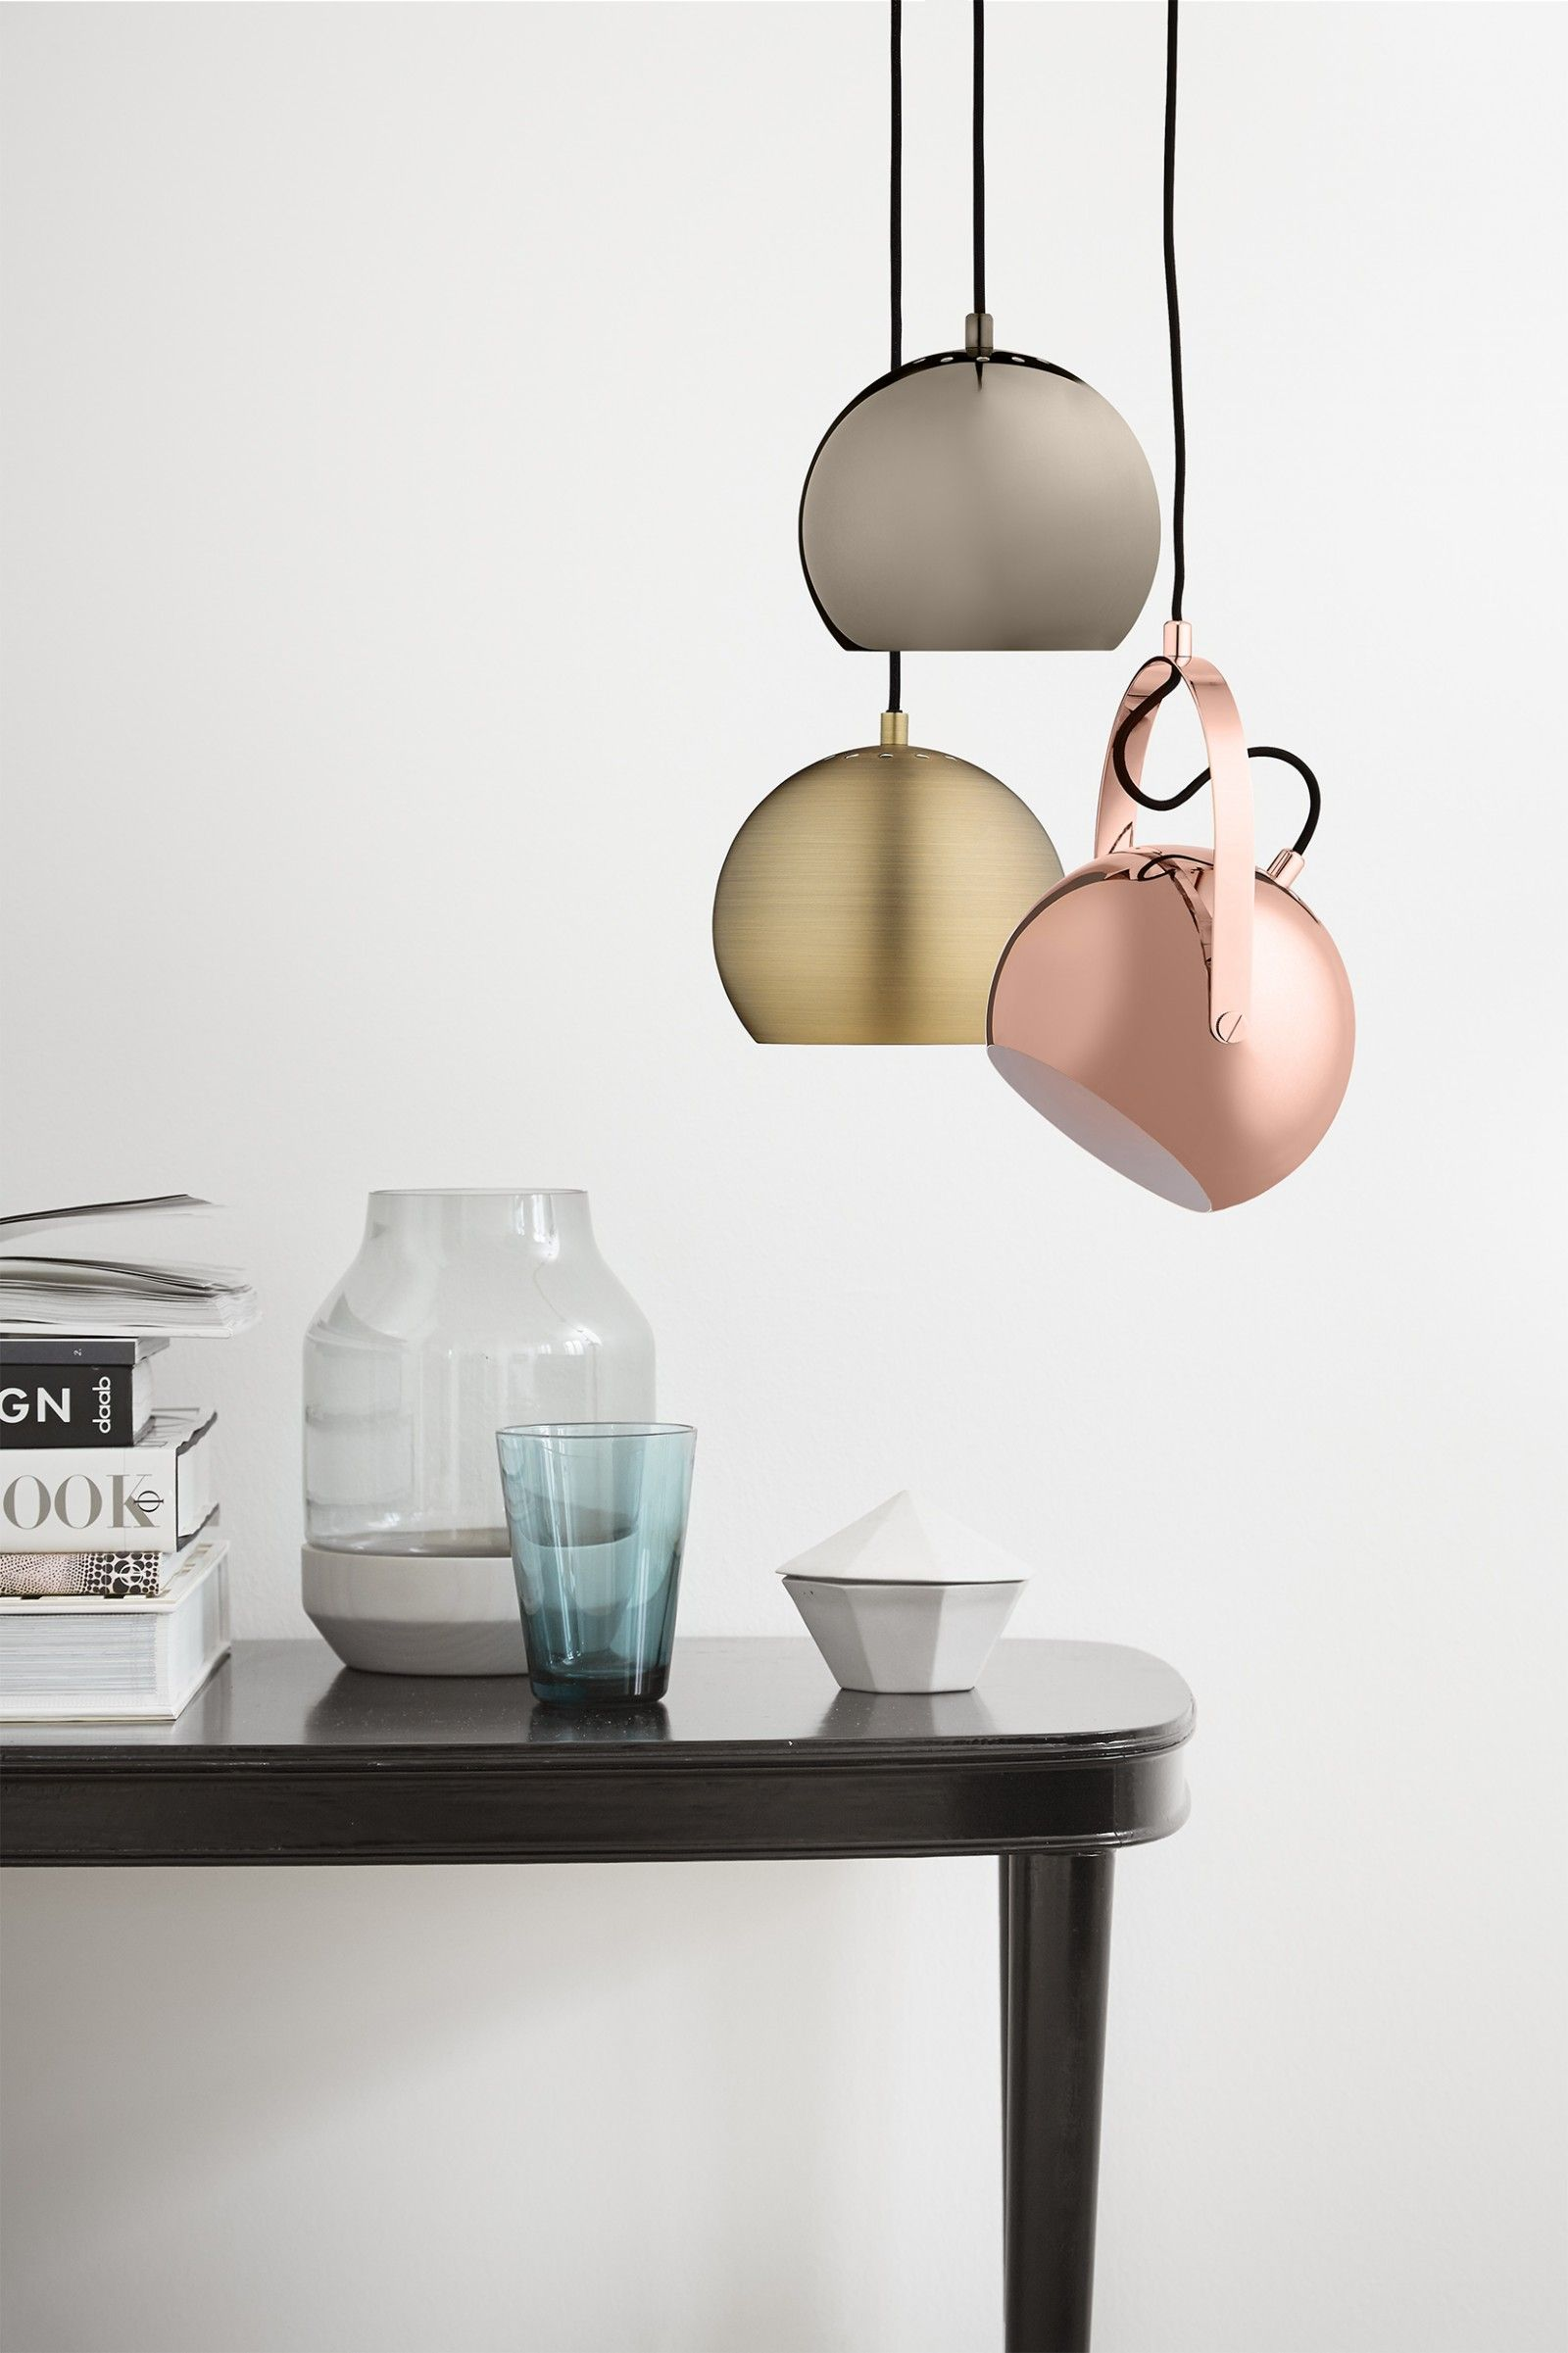 Lights & Lustra Ball W Handle Copper Glossy la 69400 lei | Somproduct ...